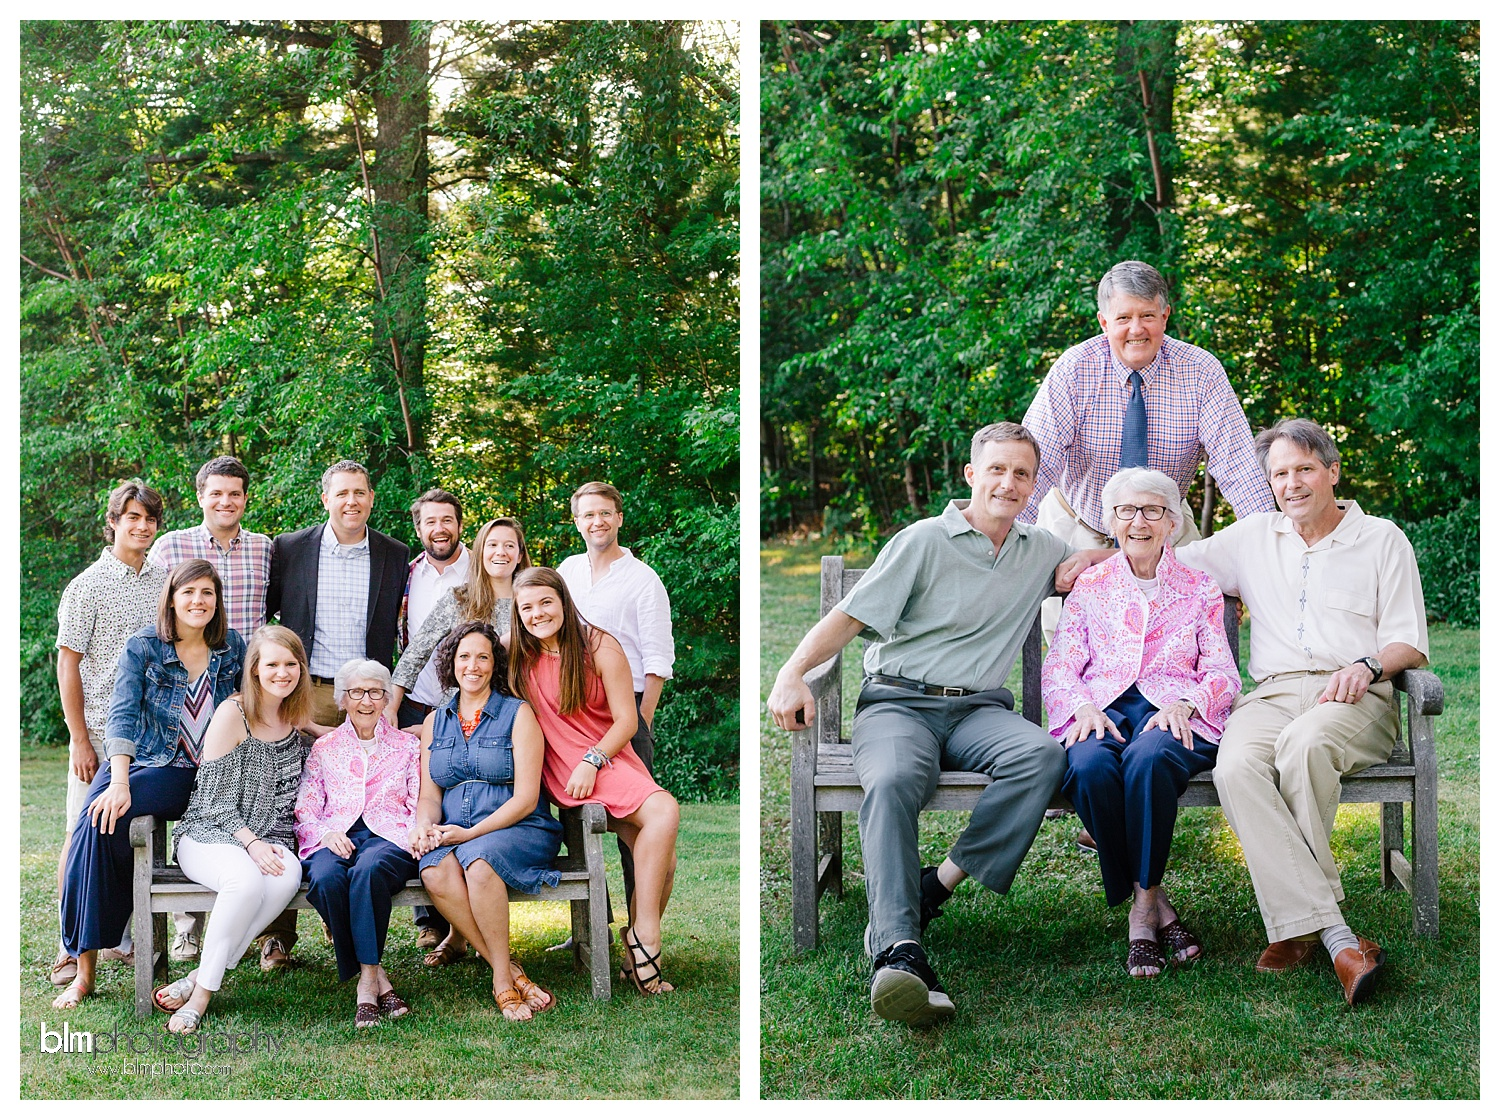 11,2017,20170729,91,Artistic,BLM,Candid,Creative,Dublin,Family Photography,Family party,Family photos,Home,Learned,Learned Rd,Learned Road,Martha Duffy,NH,NH Family Photographer,NH Wedding,Natural,Natural Light,Niles,Niles Family,Outdoor,Personal,Pet,Peterborough Wedding Photographer,Photo,Photographer,Photography,Photojournalistic,Portrait,Professional,Professional Wedding Photography,Rd,Road,USA,United States,Vivid,Wedding Photography,family reunion,www.blmphoto.com,©BLM Photography 2017,